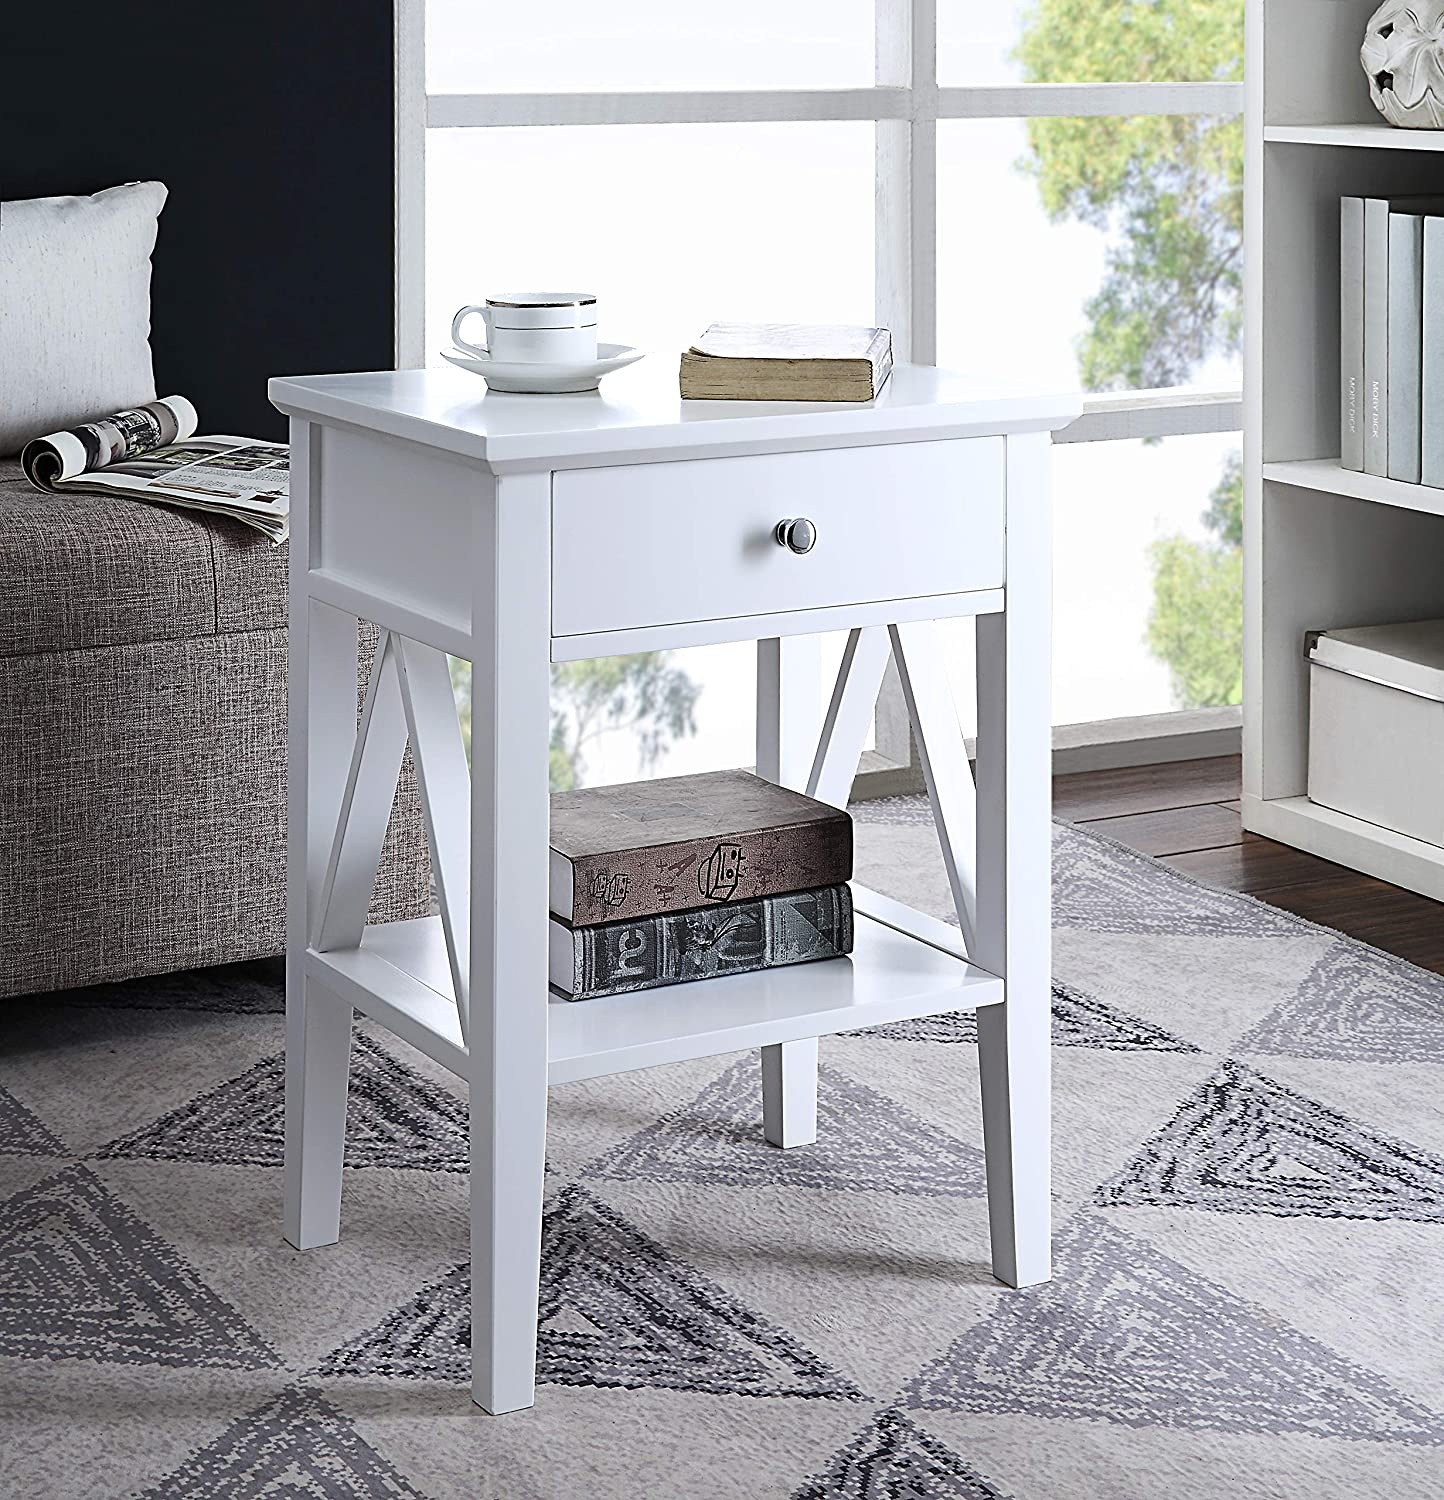 RAAMZO White Finish Nightstand Side End Table with Drawer and A-Design Sides